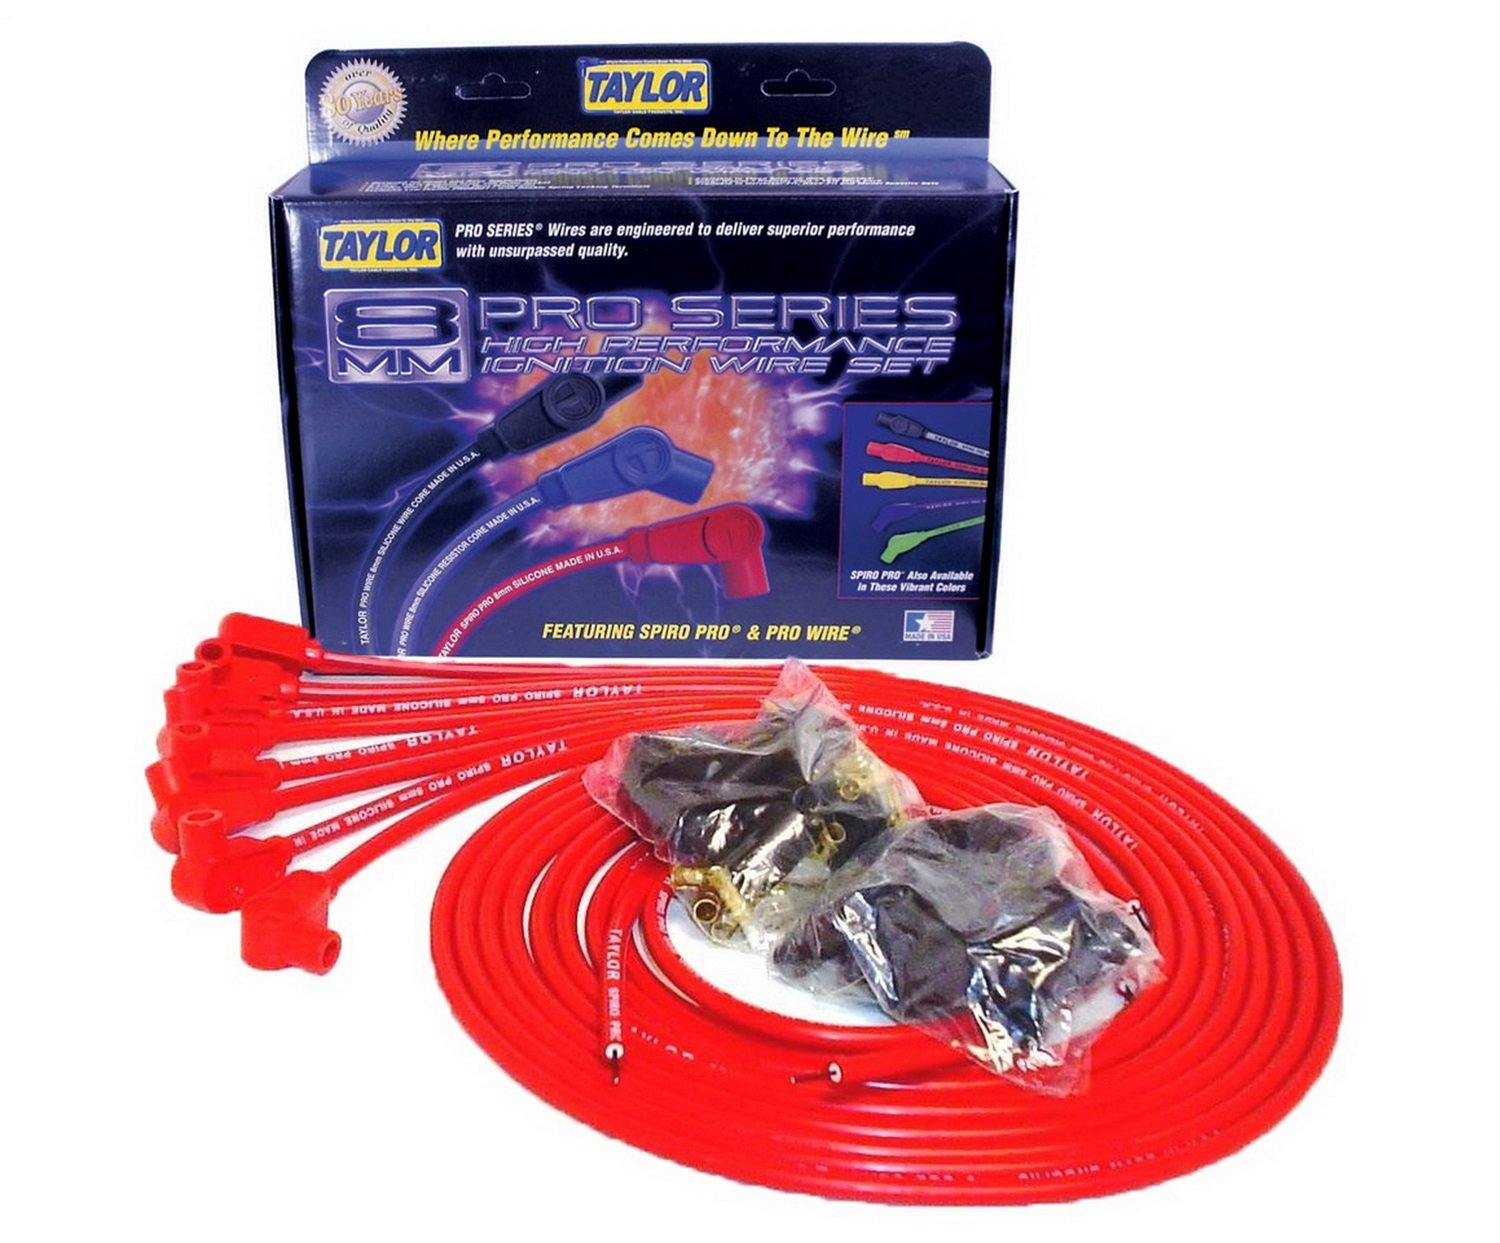 Taylor Cable 73251 Spiro-Pro Red Spark Plug Wire Set by Taylor Cable